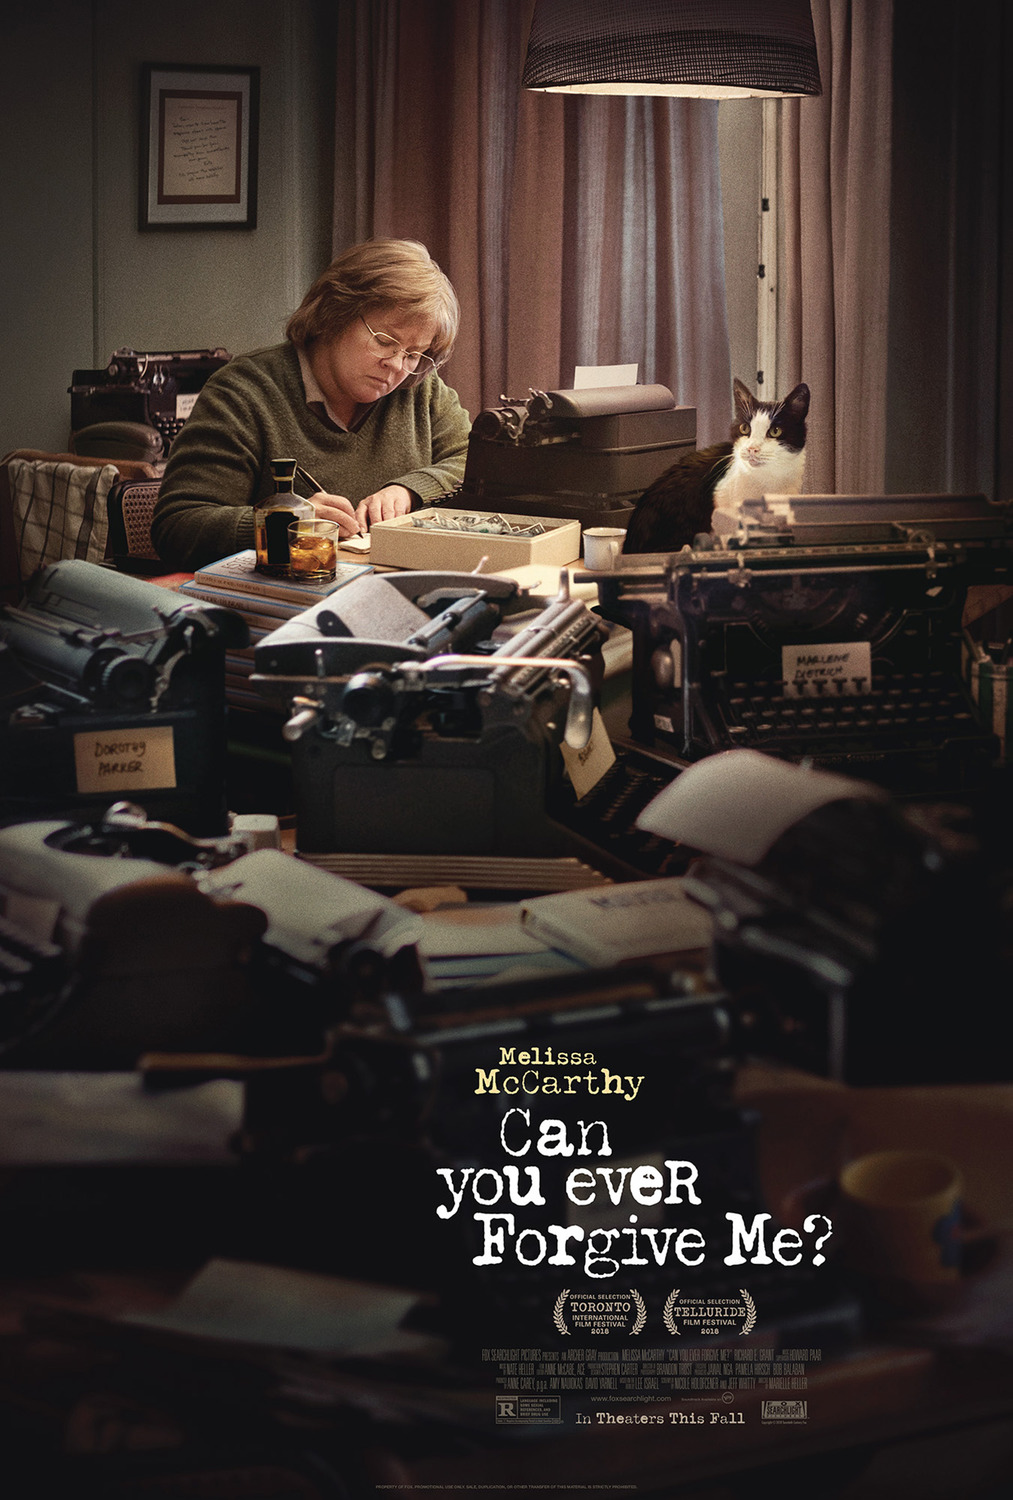 Can You Ever Forgive Me? poster image